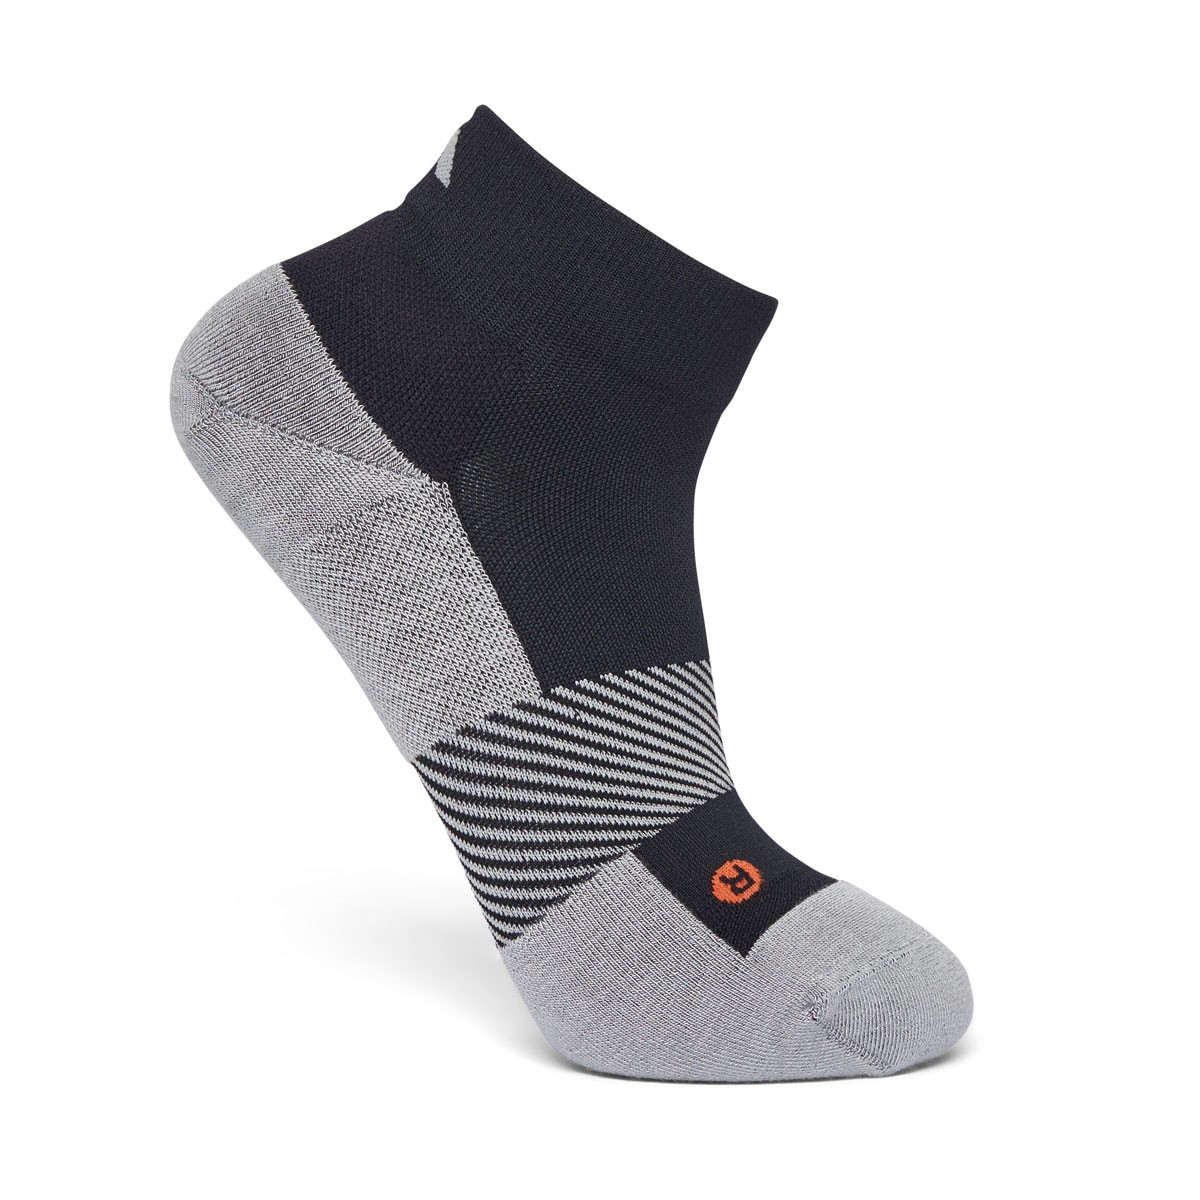 No. 8 Quarter Length Socks